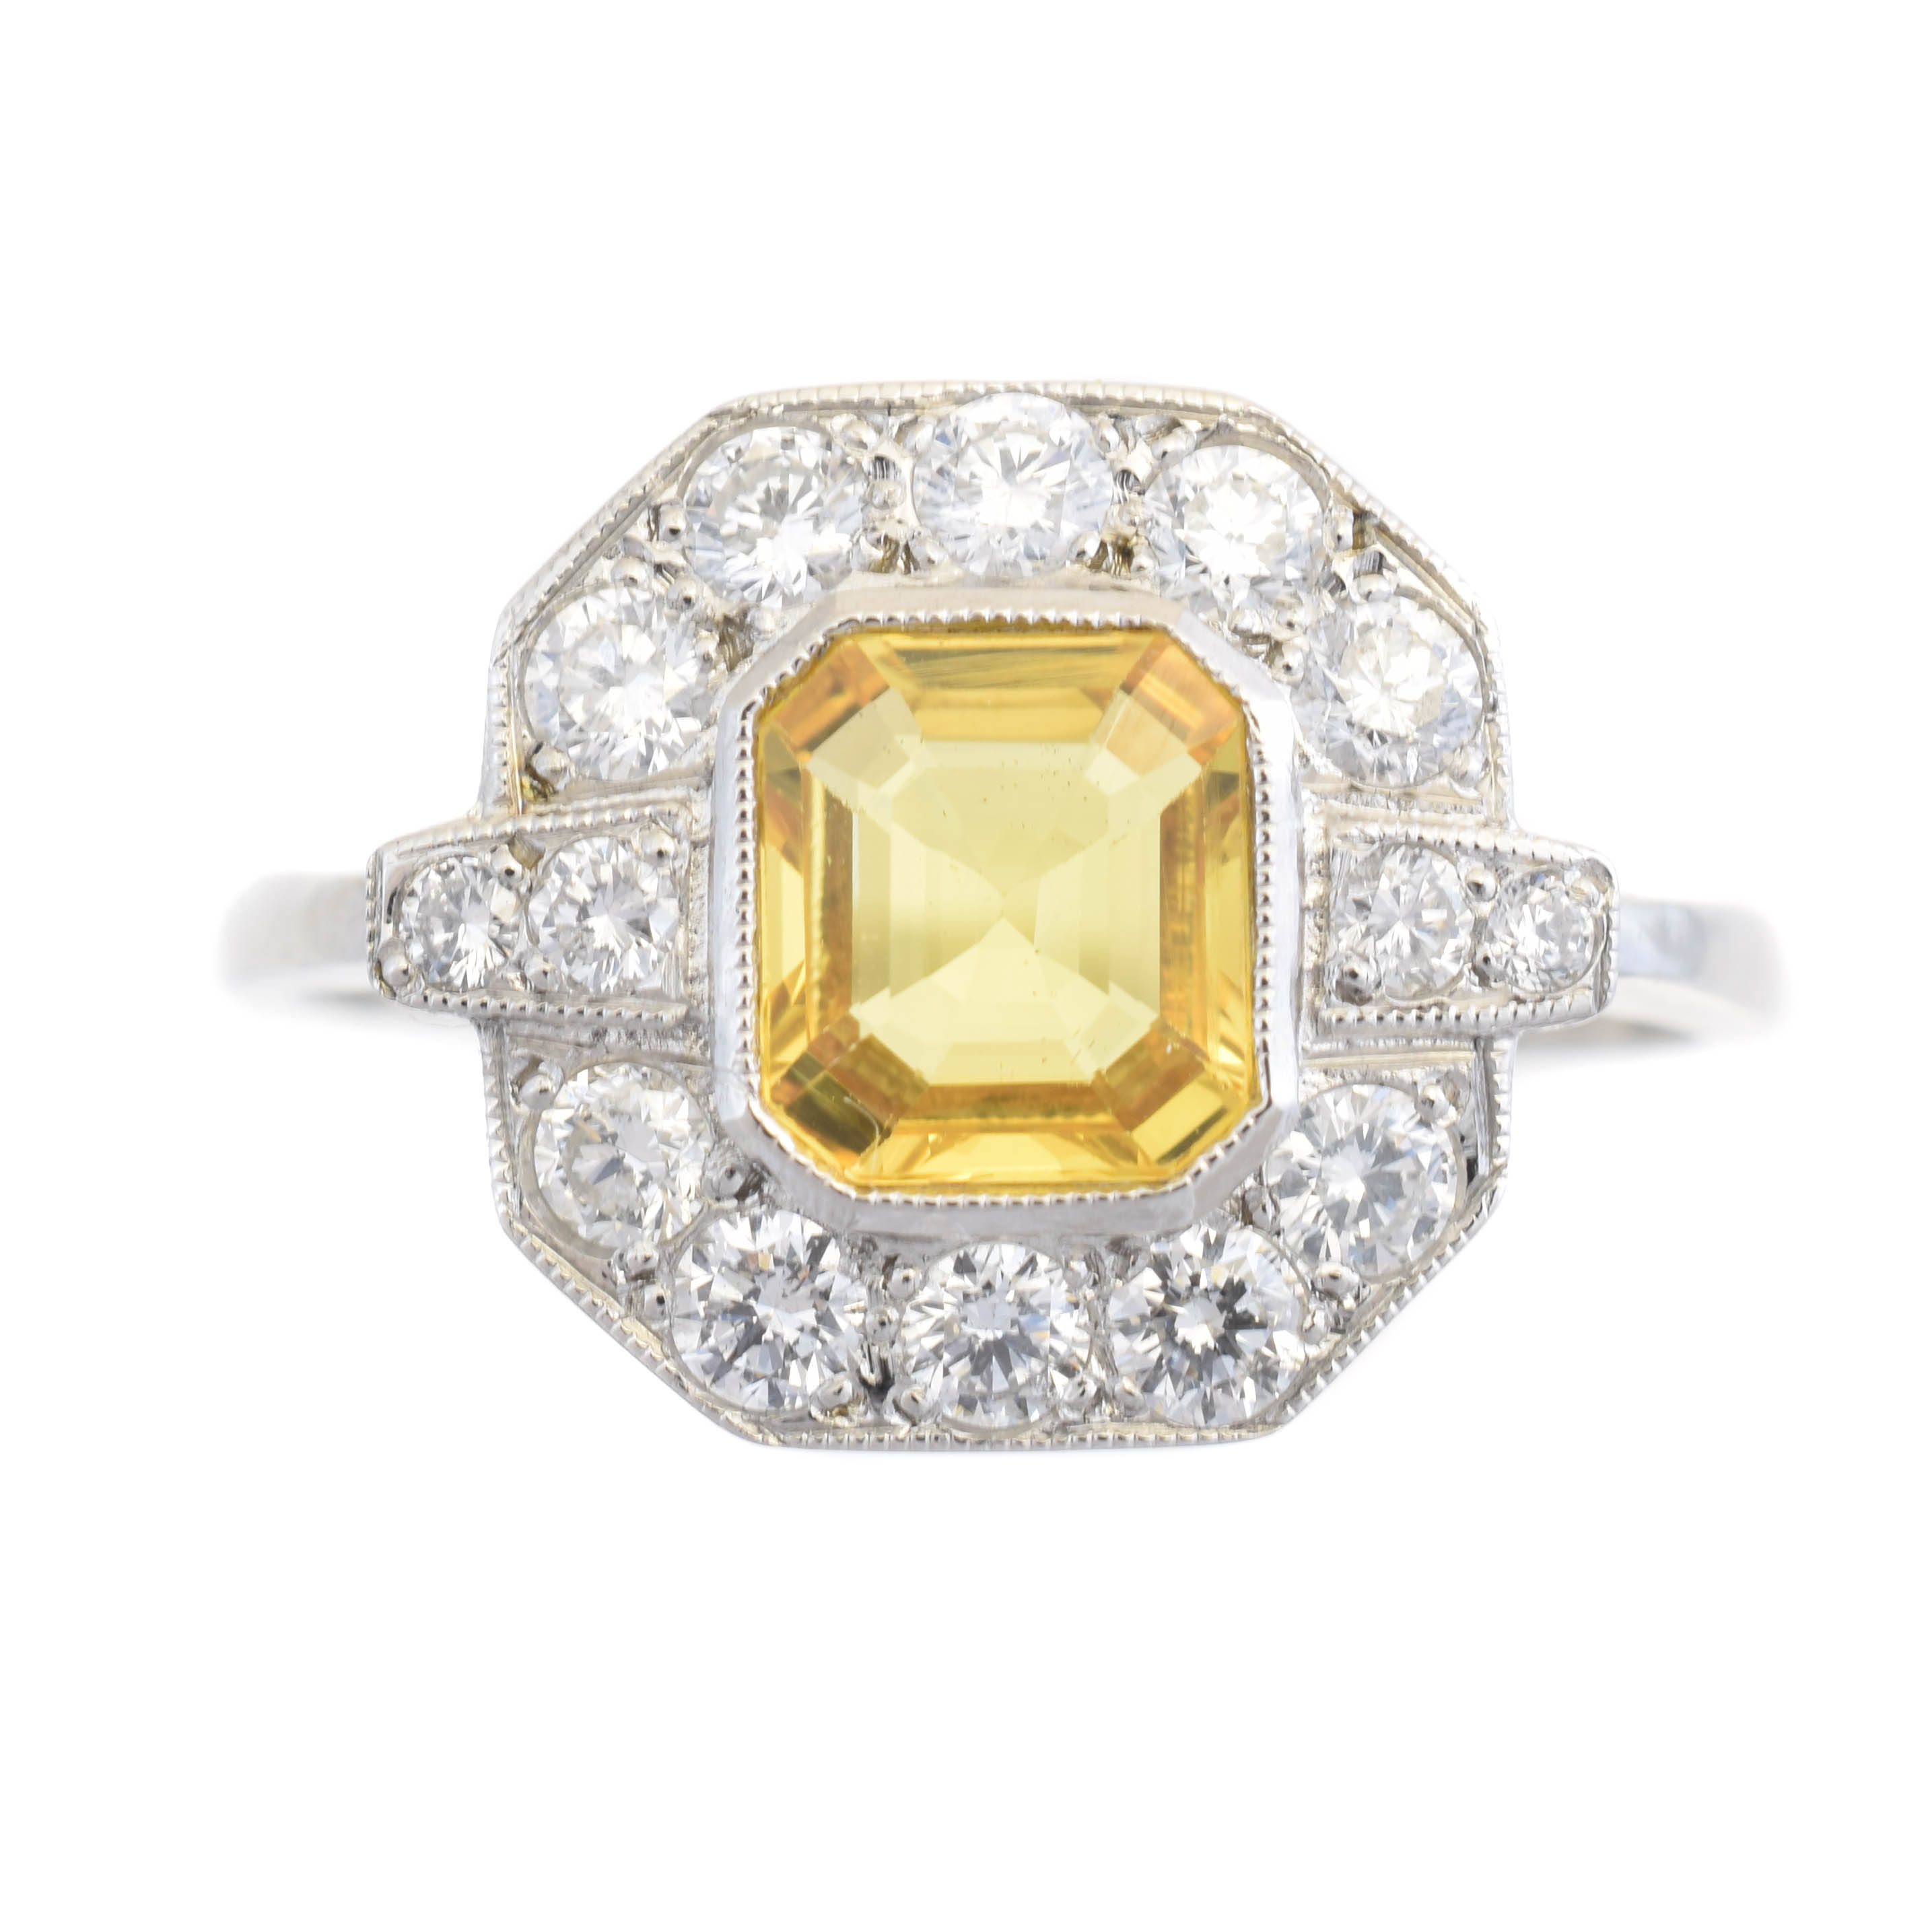 A sapphire and diamond cluster ring, the rectangular shape yellow sapphire weighing approx. 1ct within a brilliant cut diamond surround and similarly cut diamond sides, estimated total diamond weight 0.50ct, stamped PLAT, ring size O1/2, gross weight 4.8g.